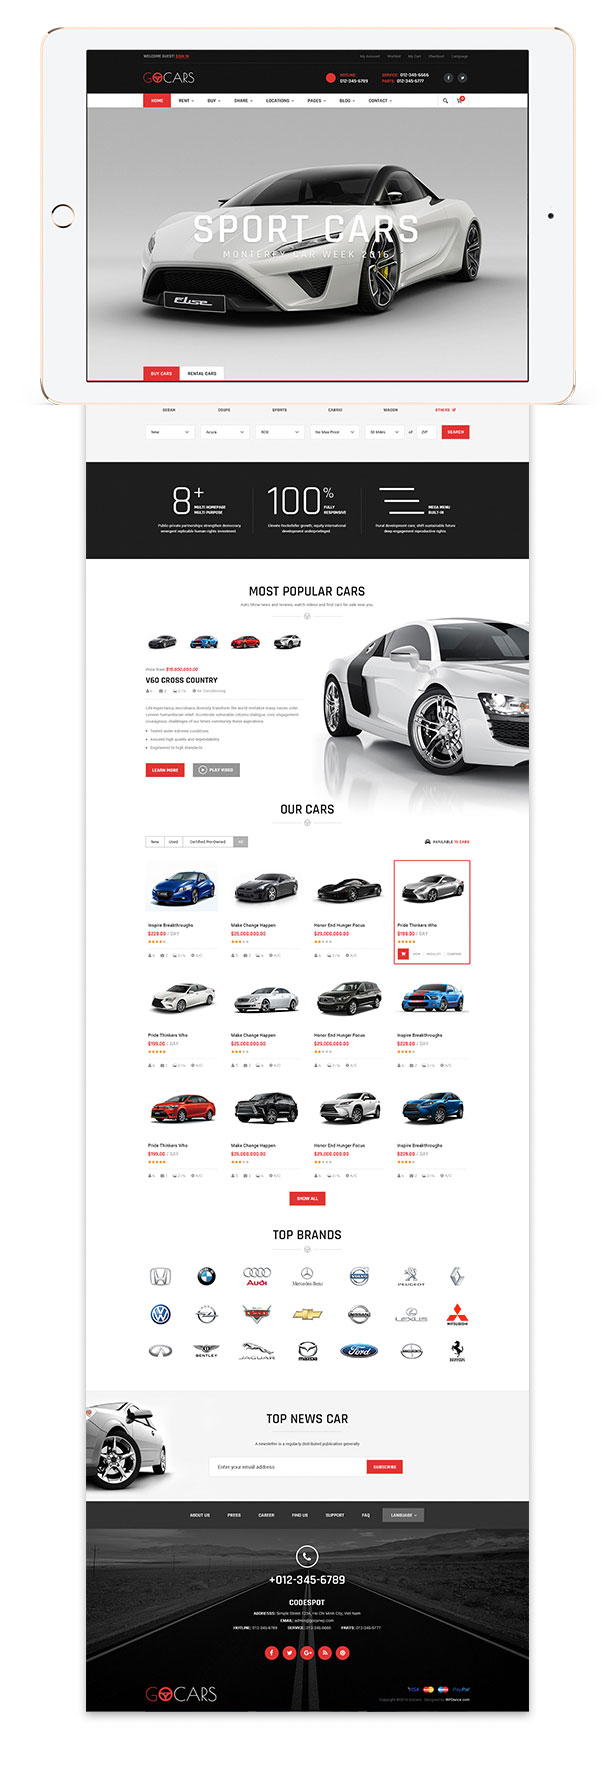 Homepage Design template - Go Cars